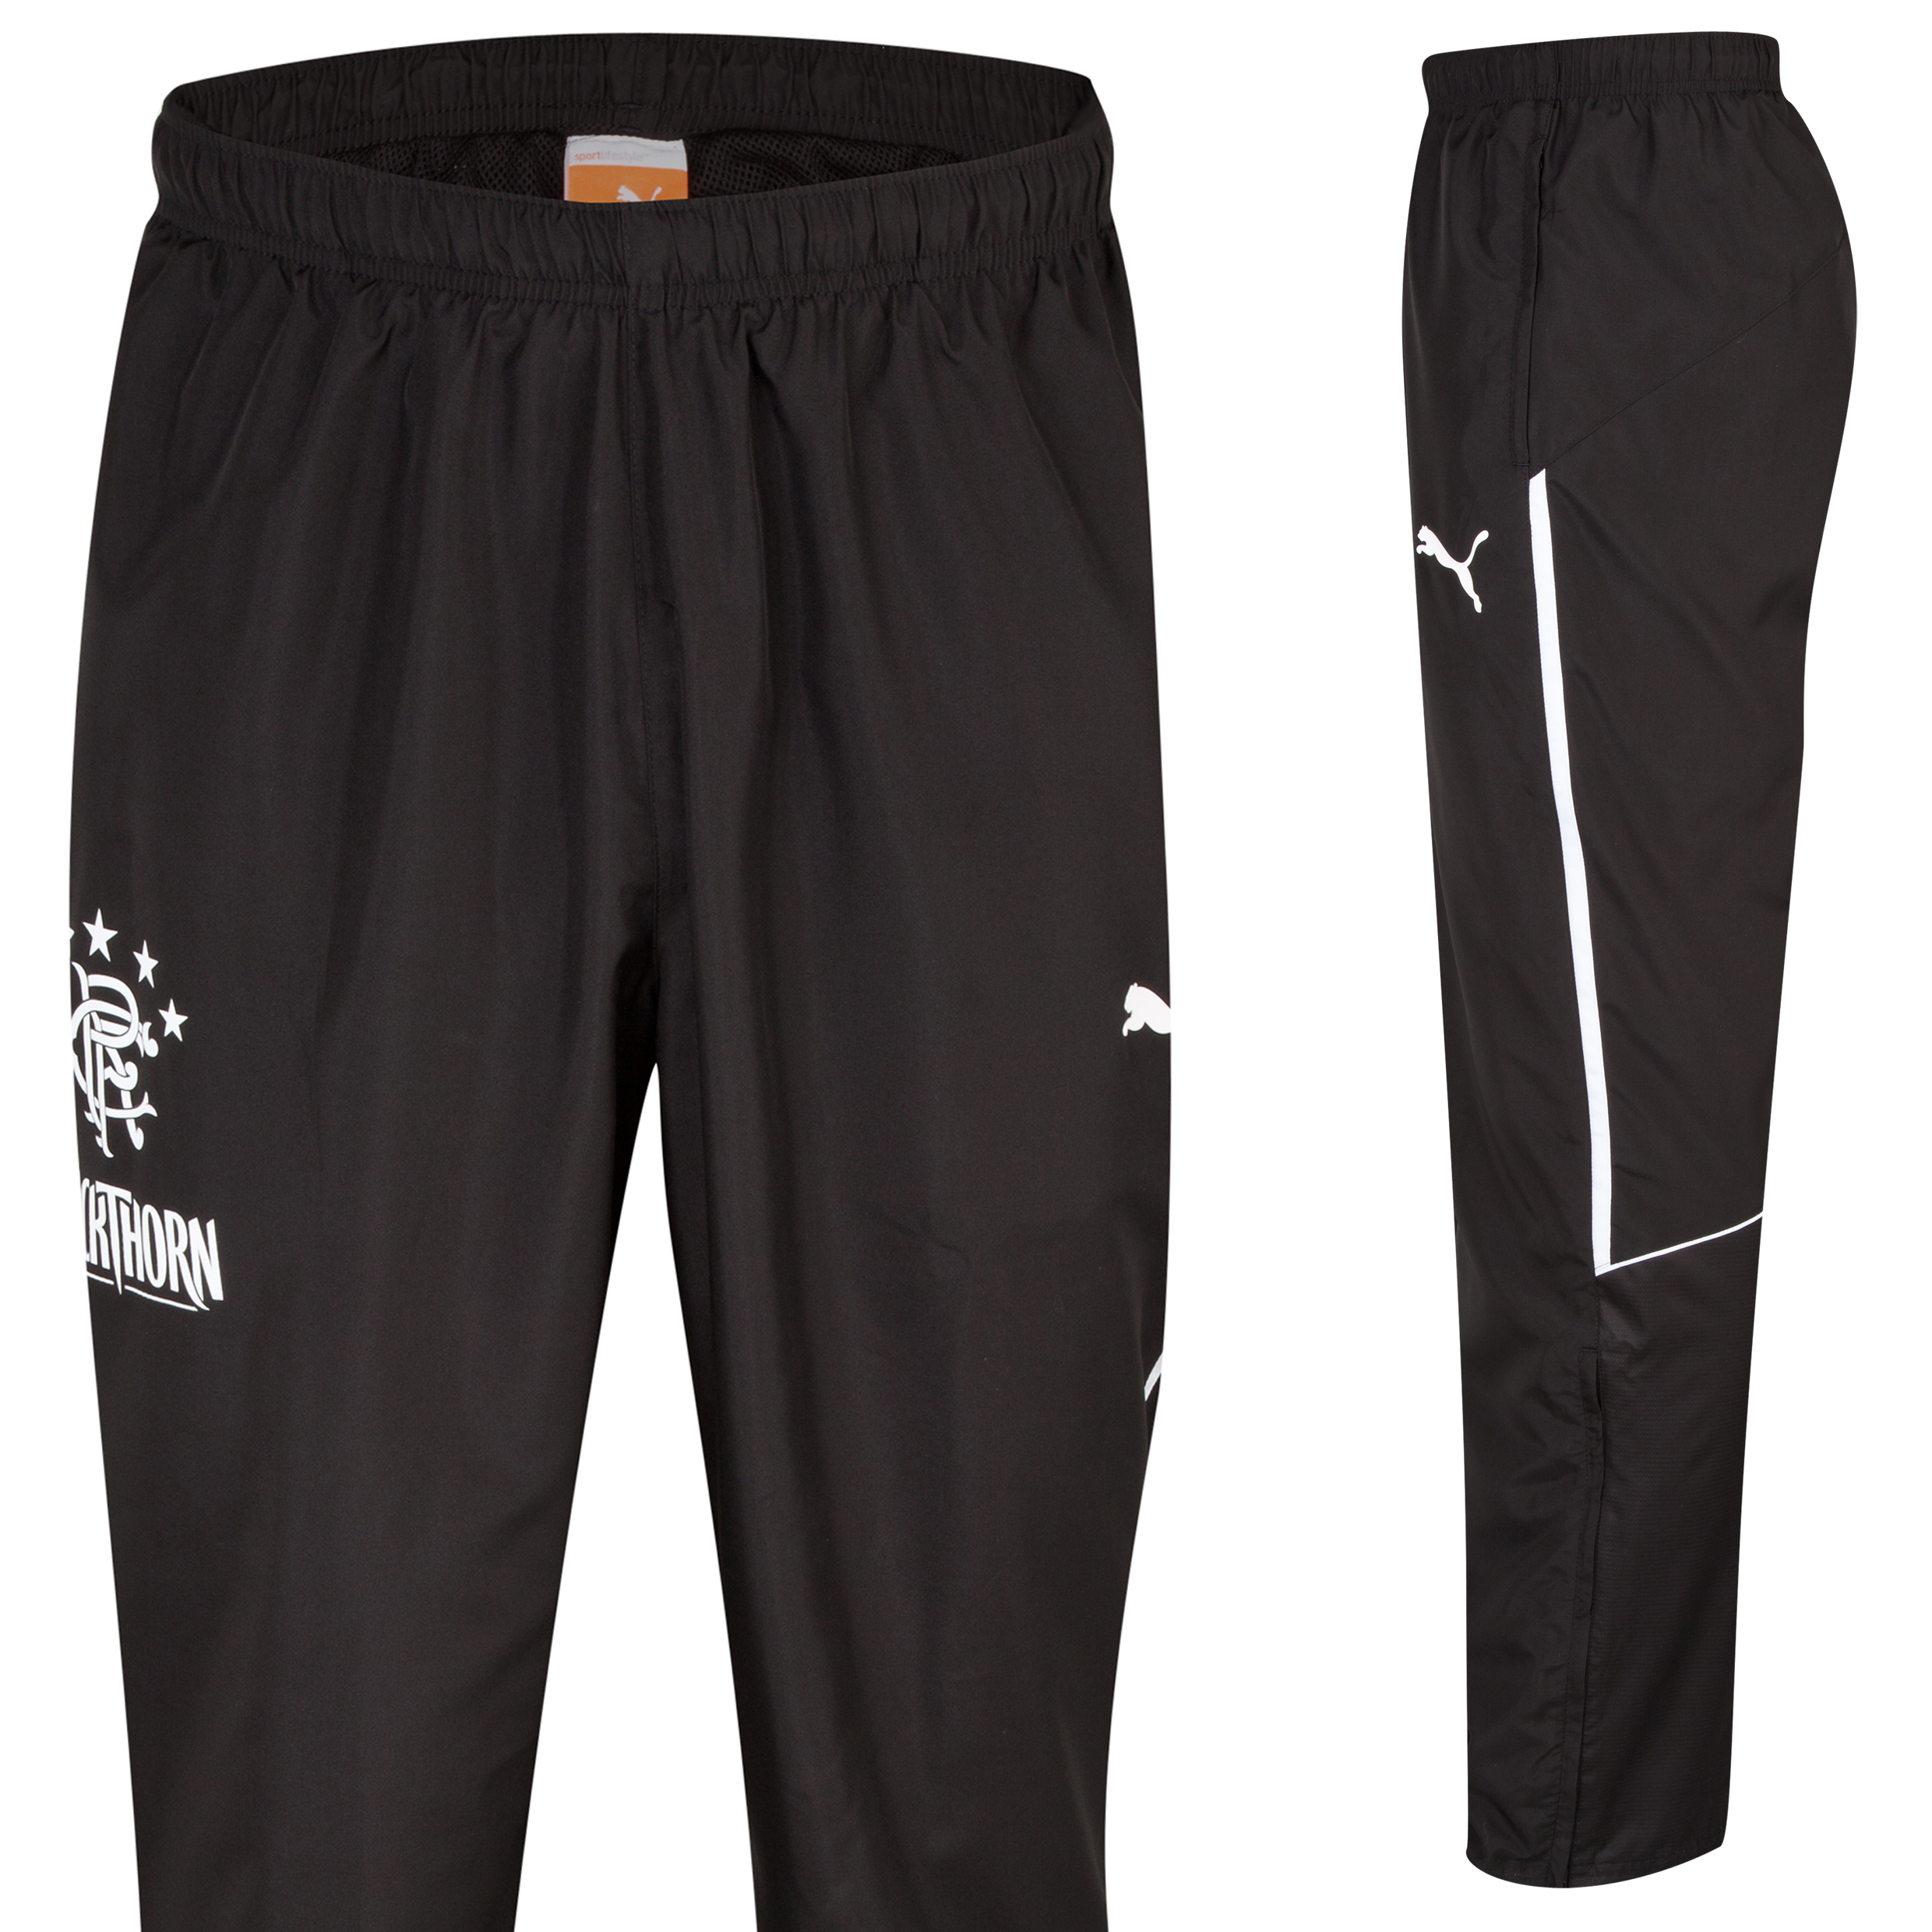 Glasgow Rangers King Woven Pants - Black Black